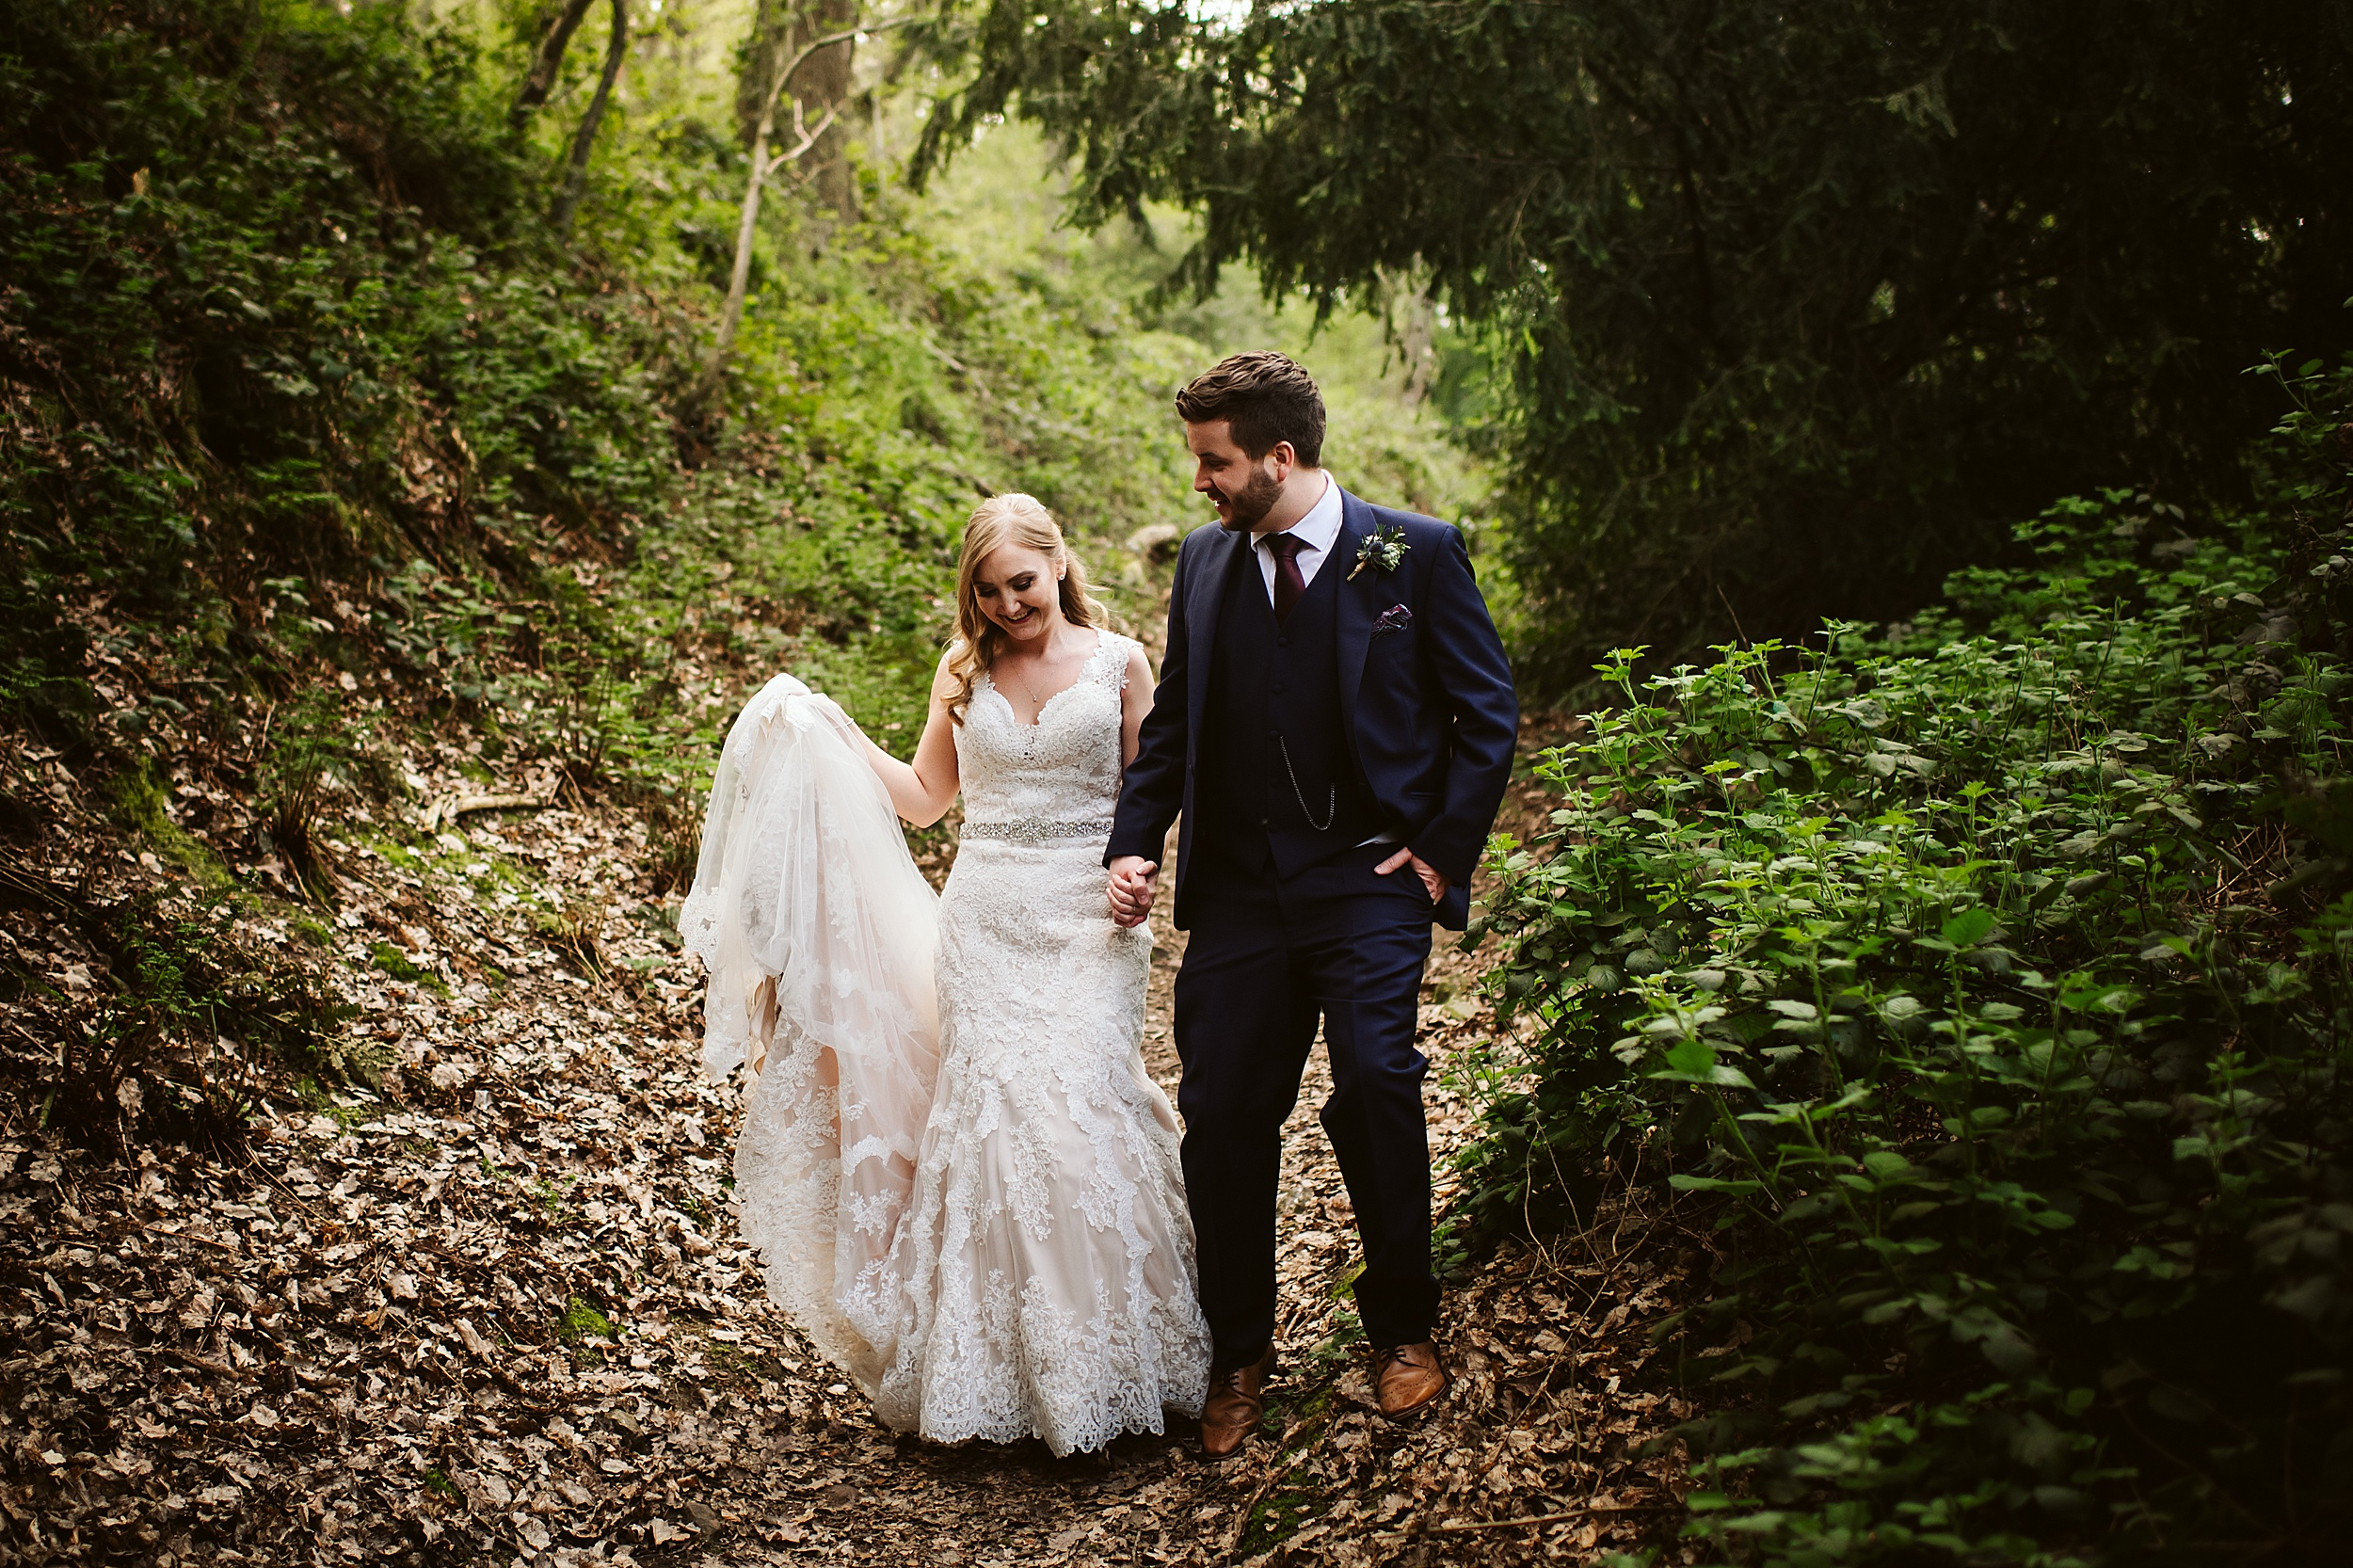 Peckforton_Castle_Cheshire_Toronto_Wedding_Photographer_UK_Destination_Wedding_0071.jpg